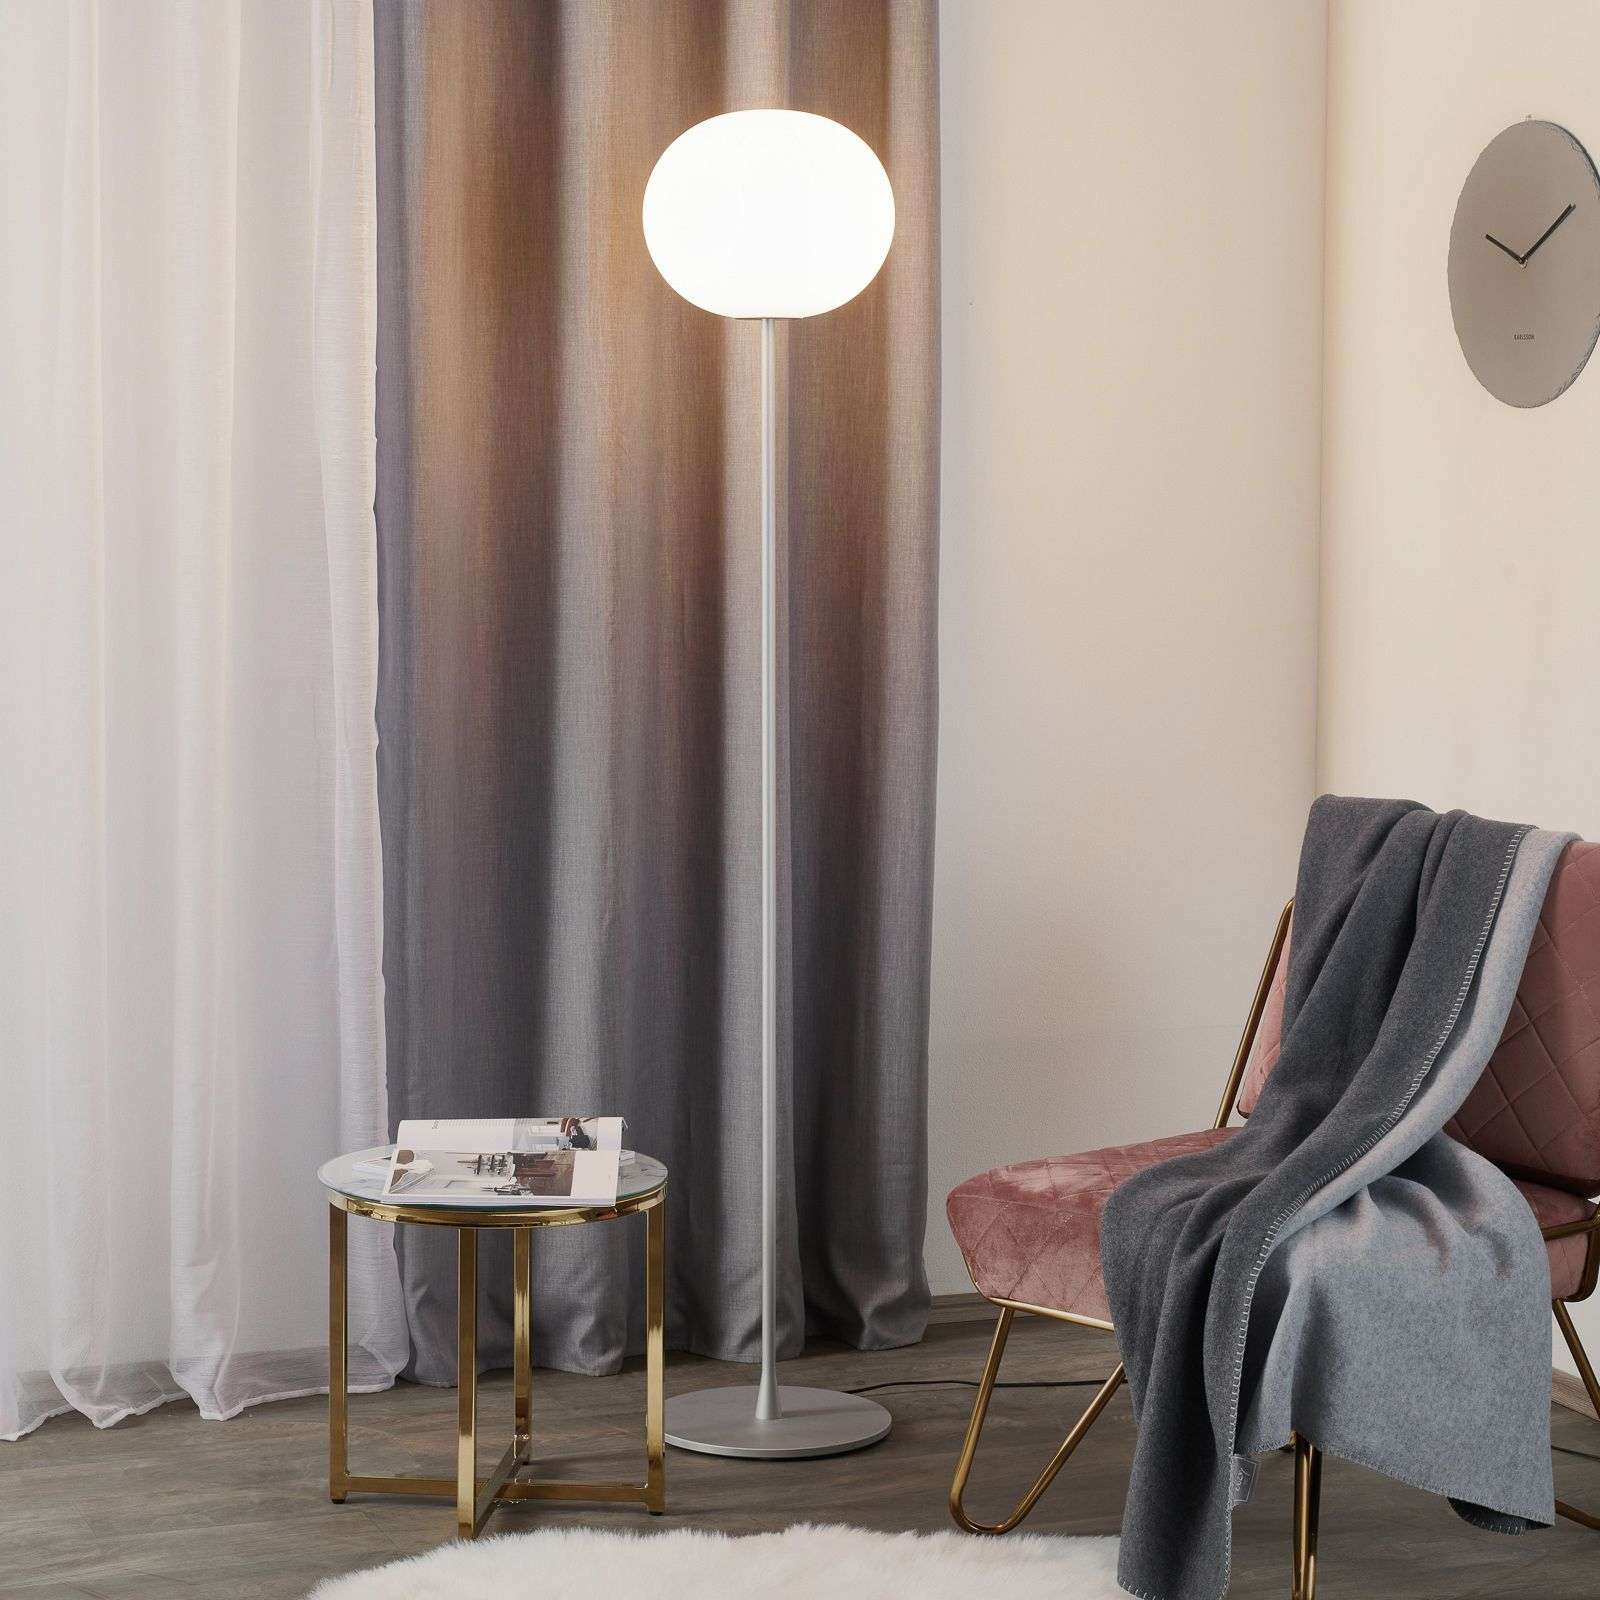 Lampadaire design Glo-Ball F2 by FLOS-3510147-33